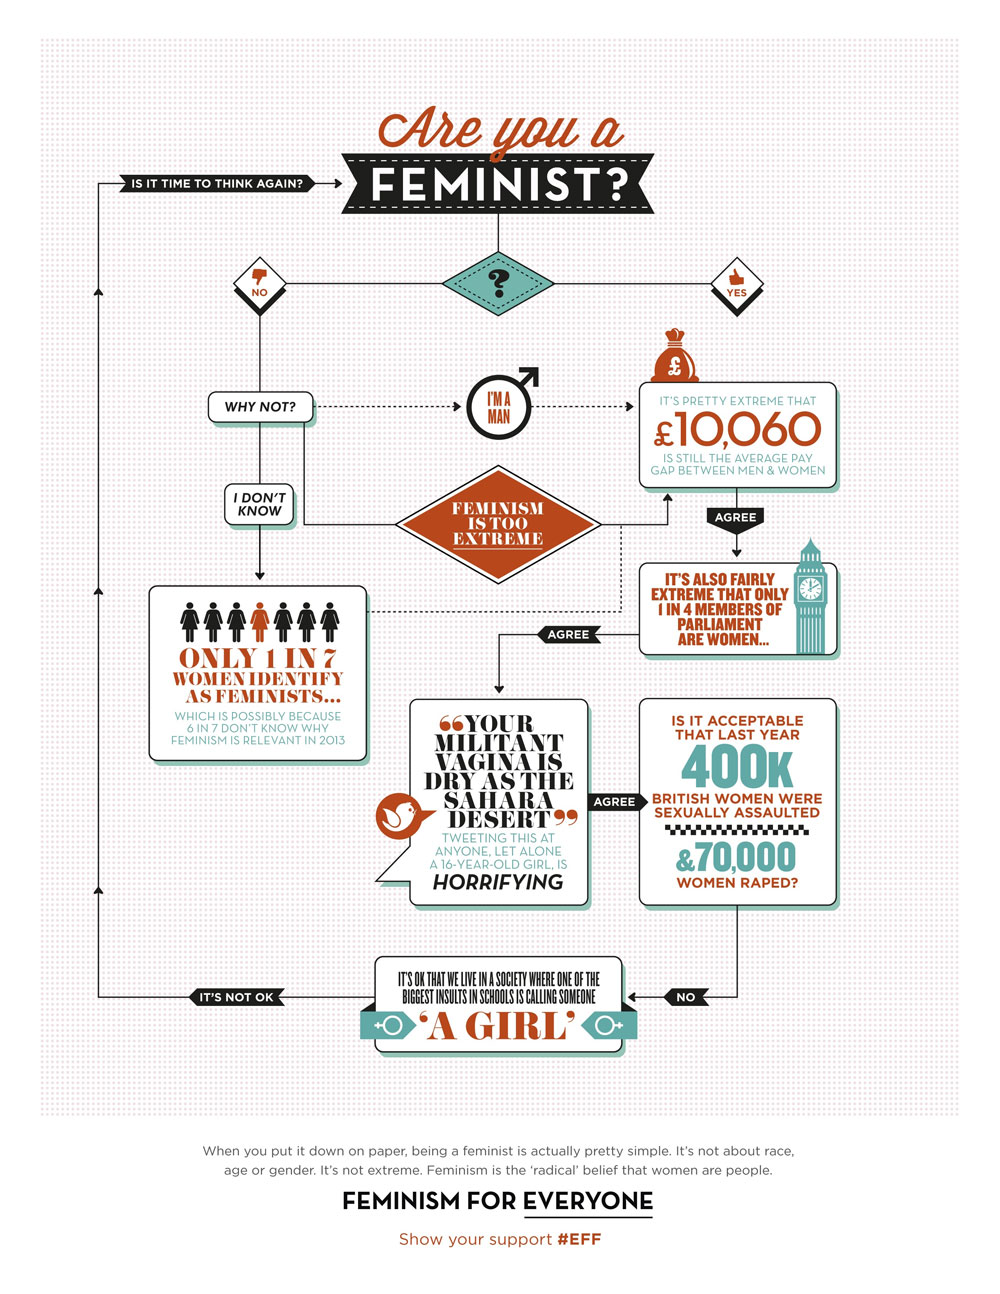 Is Feminist a Dirty Word?